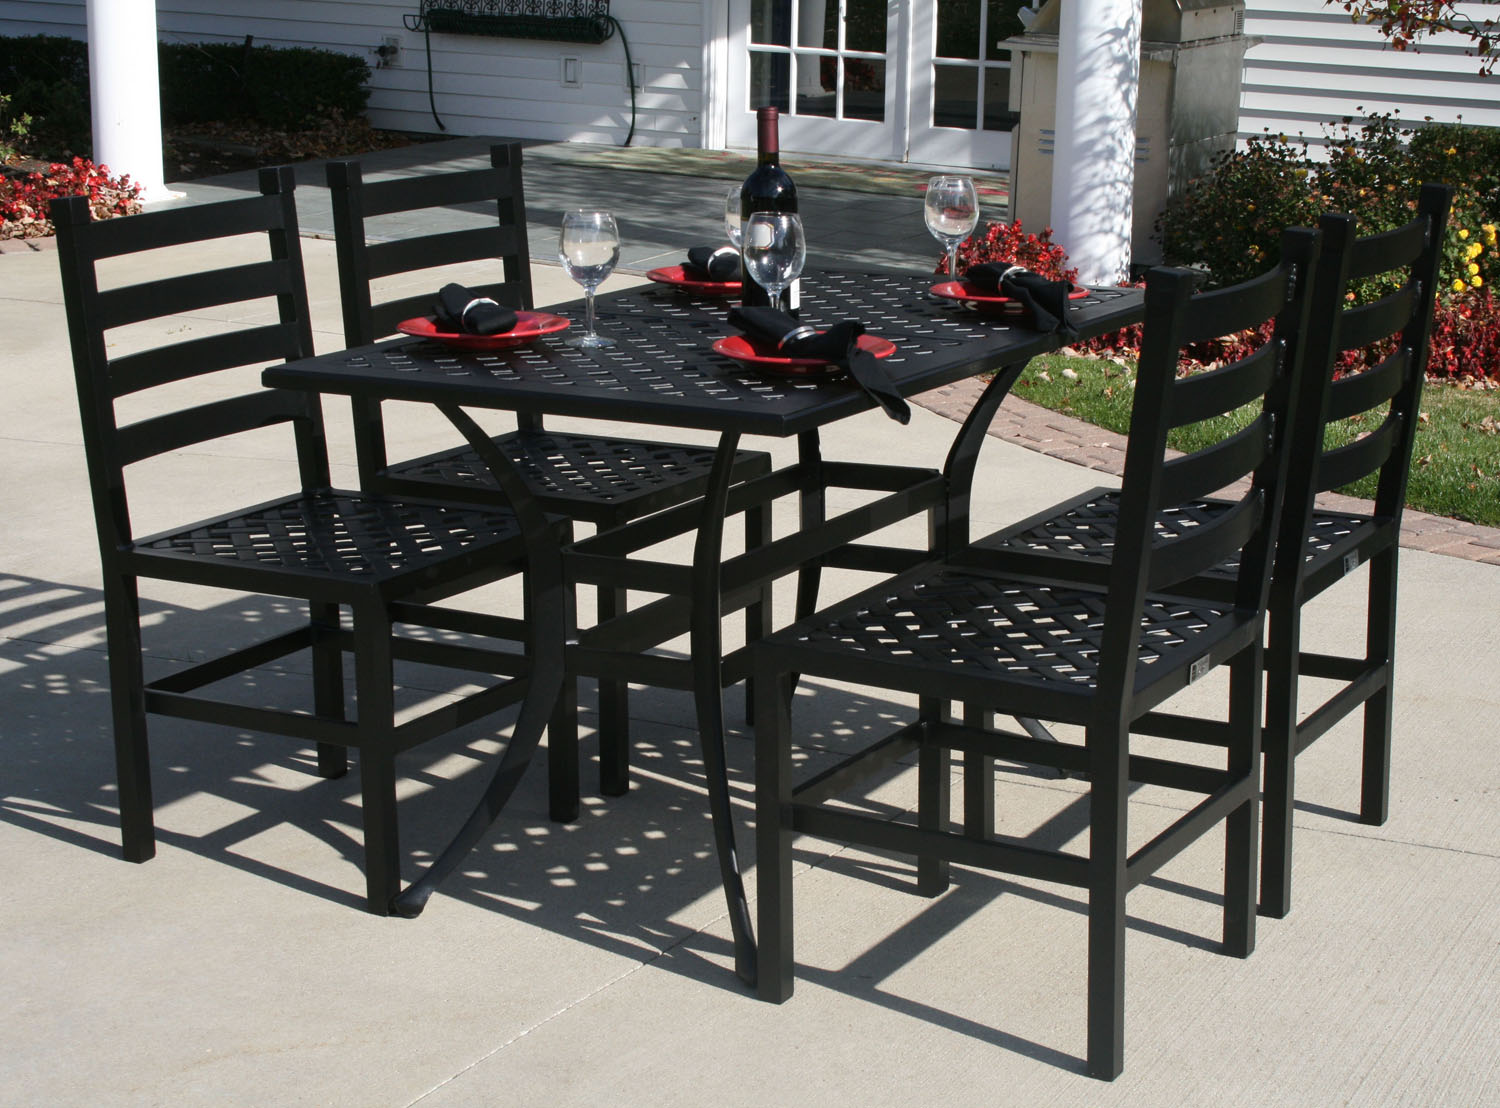 Welded Furniture Related Keywords & Suggestions Welded